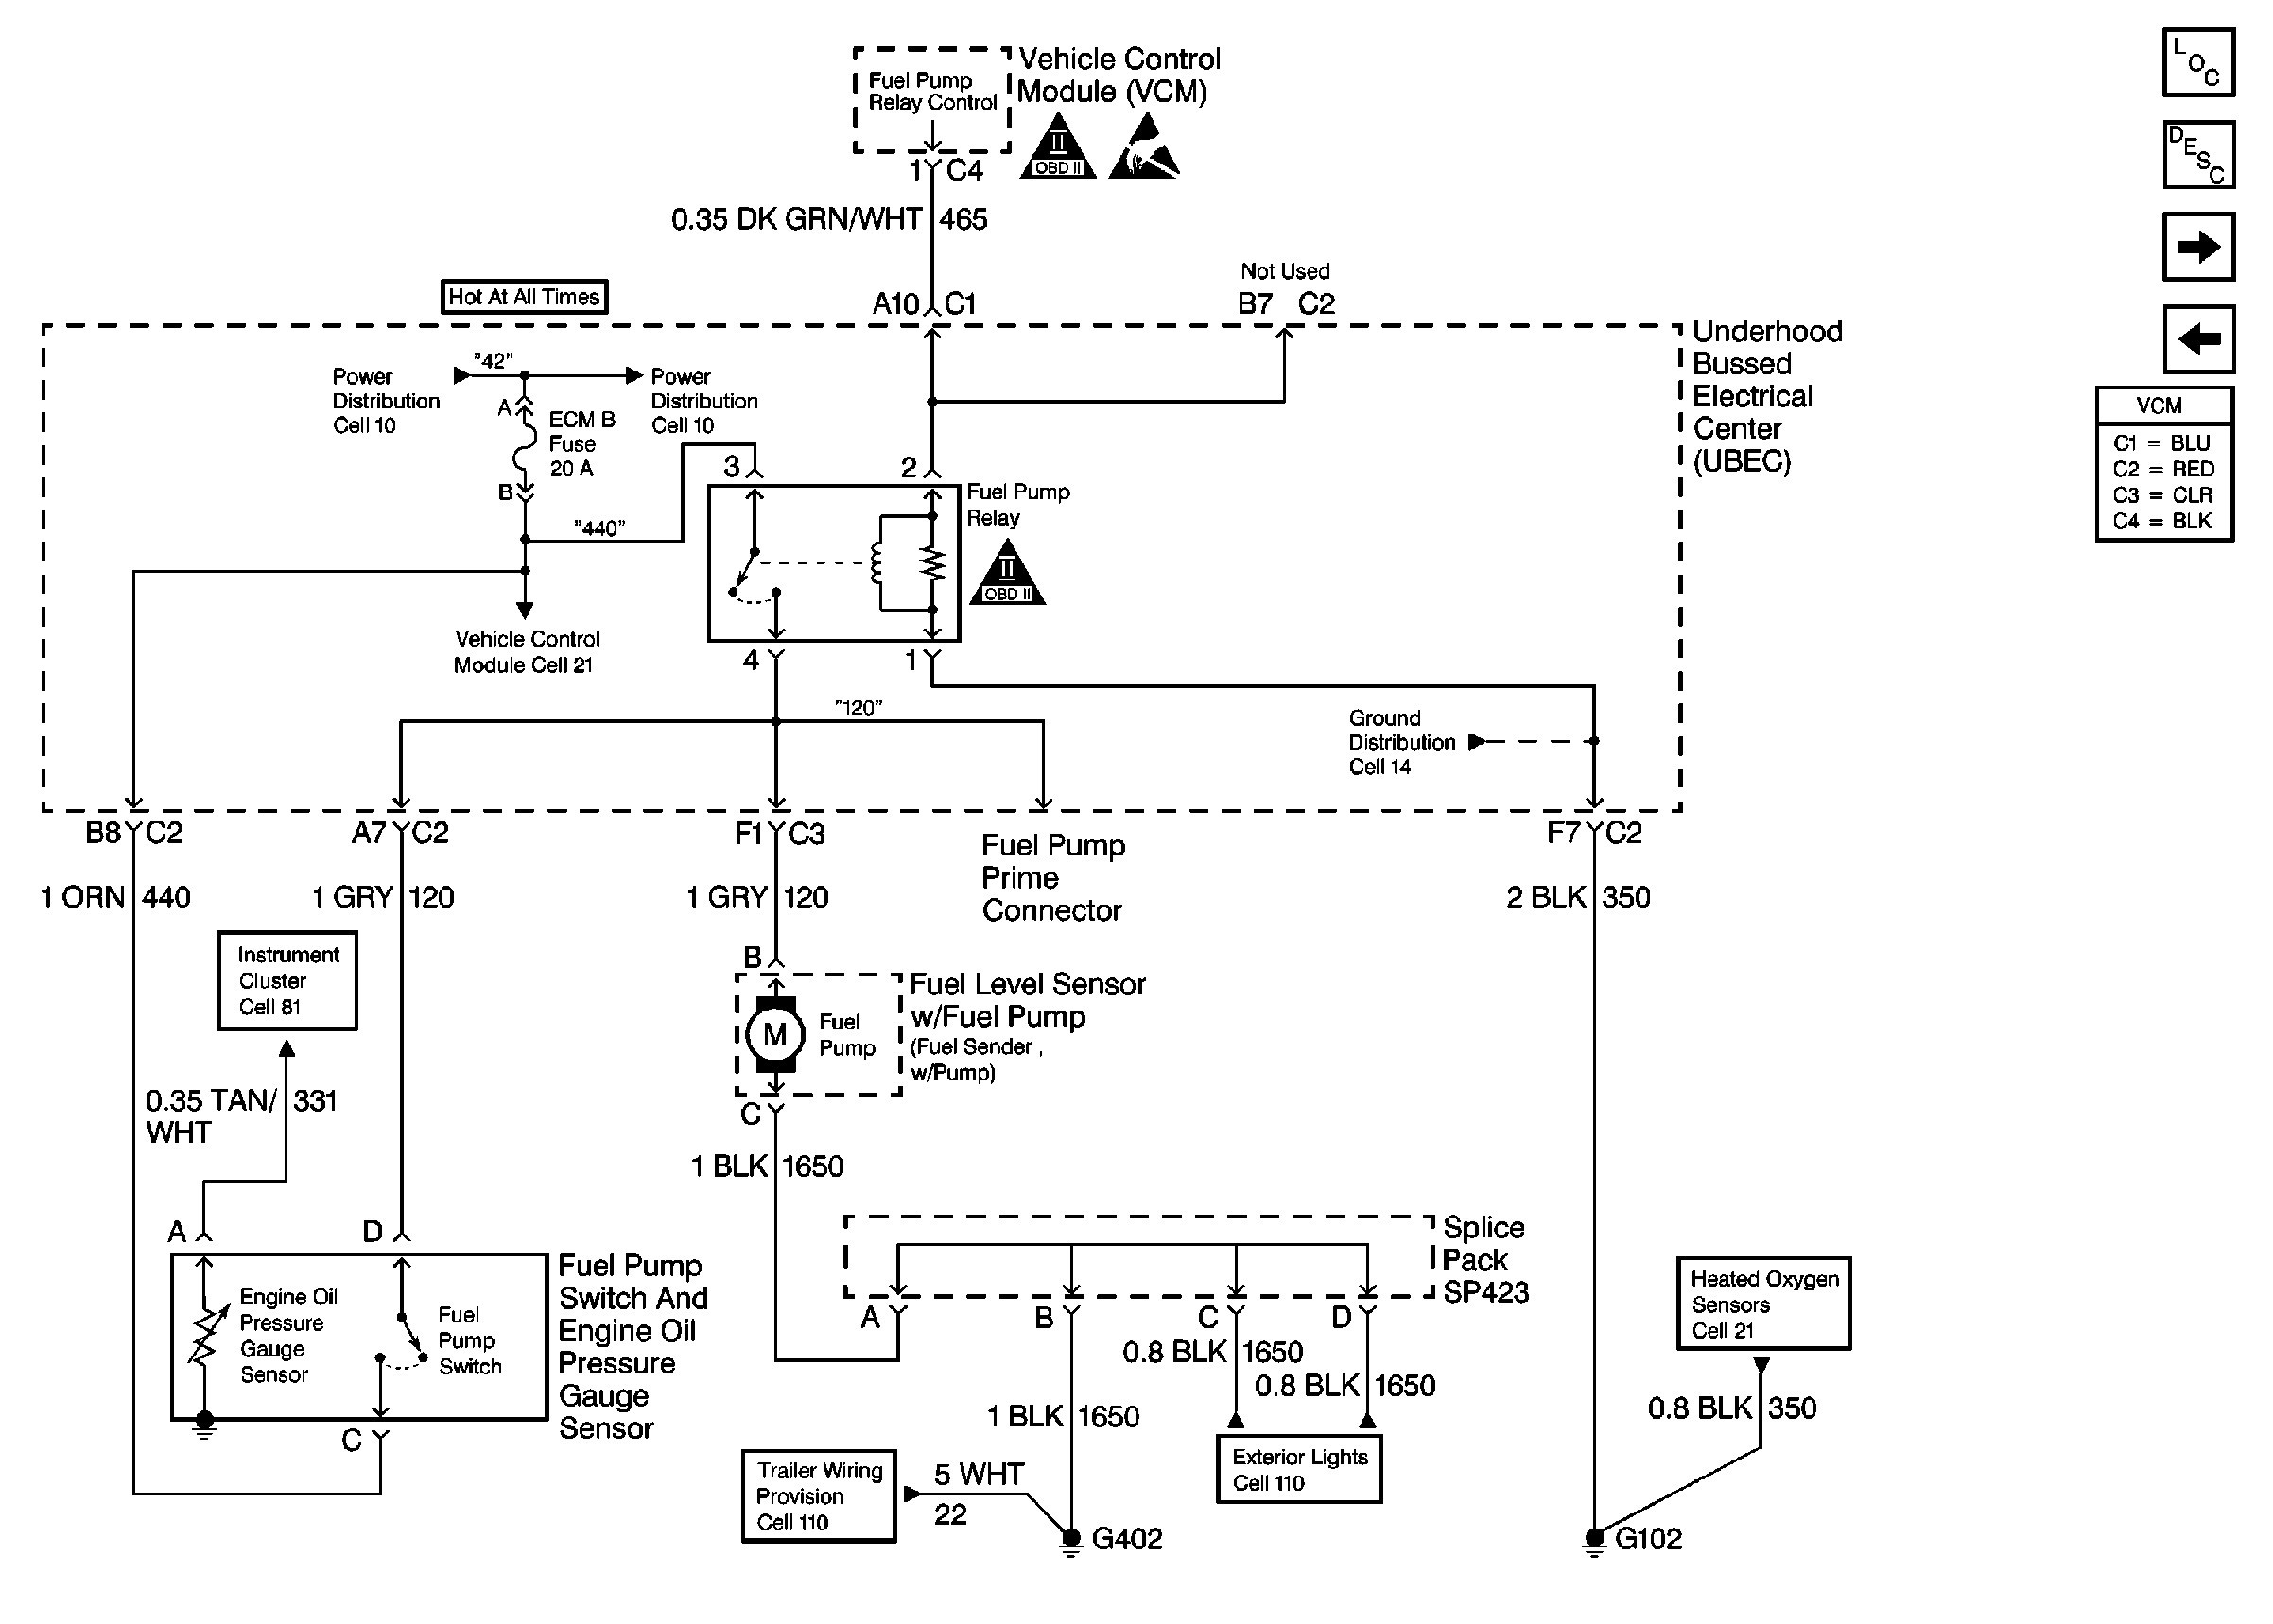 Chevrolet S10 Wiring Diagram 1998 Chevy S10 2 2 Engine Diagram Of Chevrolet  S10 Wiring Diagram